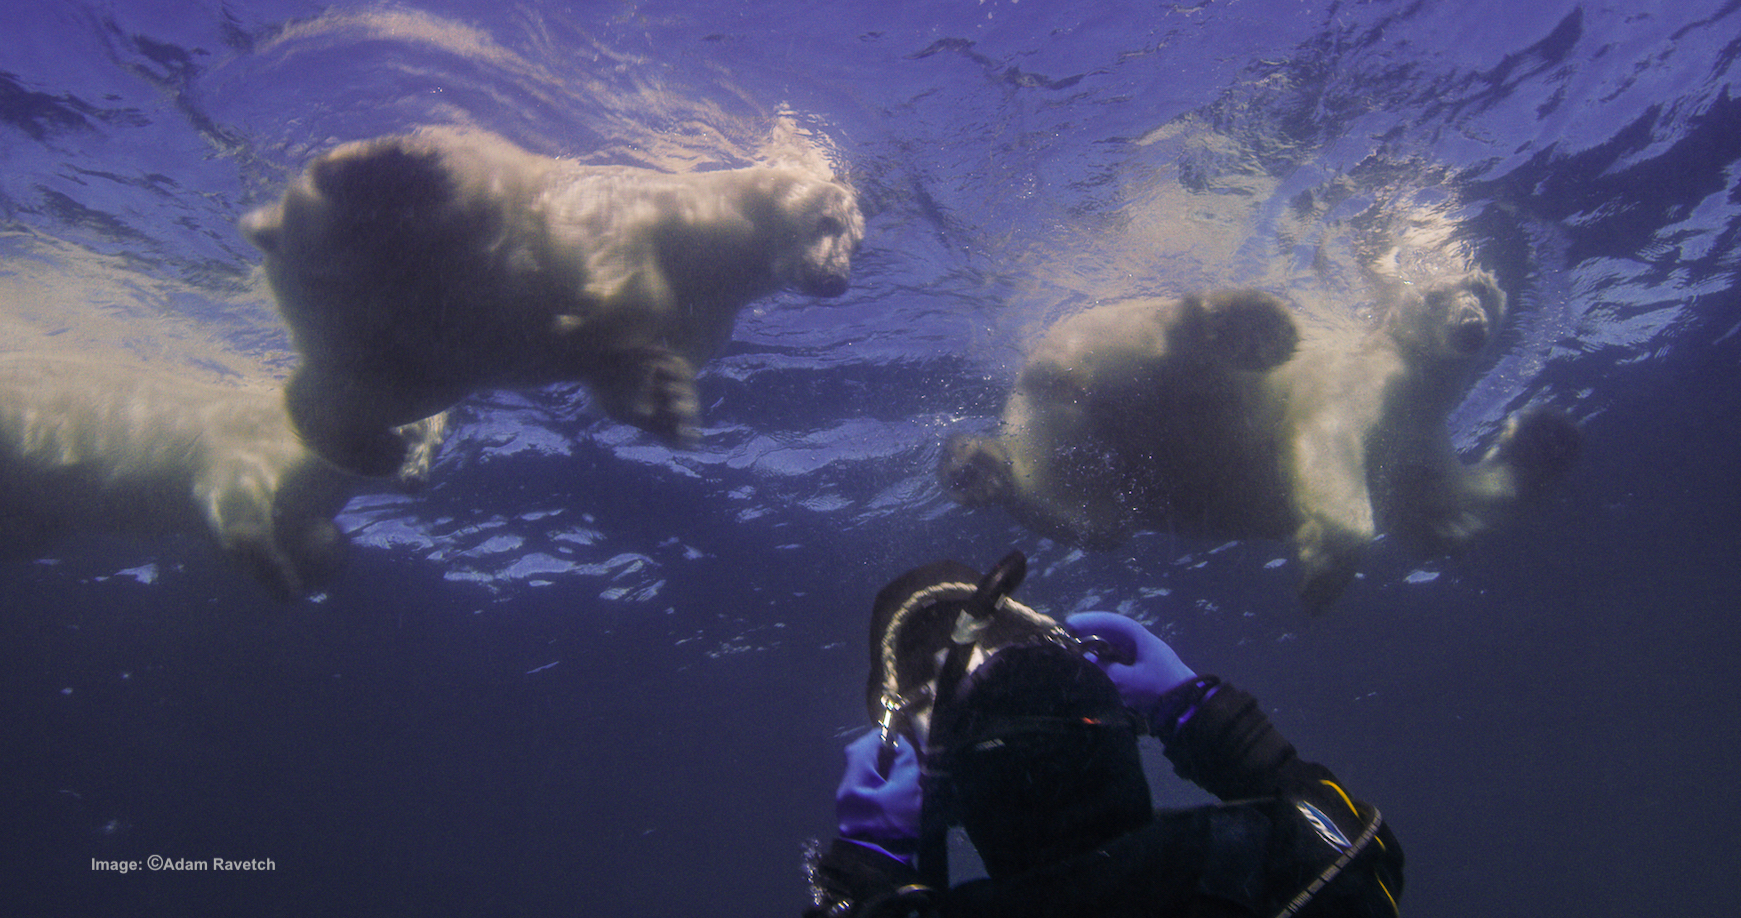 THE POLAR BEAR FAMILY, A MOTHER AND TWO CUBS, PASSED ALMOST DIRECTLY OVER OUR HEADS. AMOS CONTINUED TO FILM. IMAGE: BY ©ADAM RAVETCH